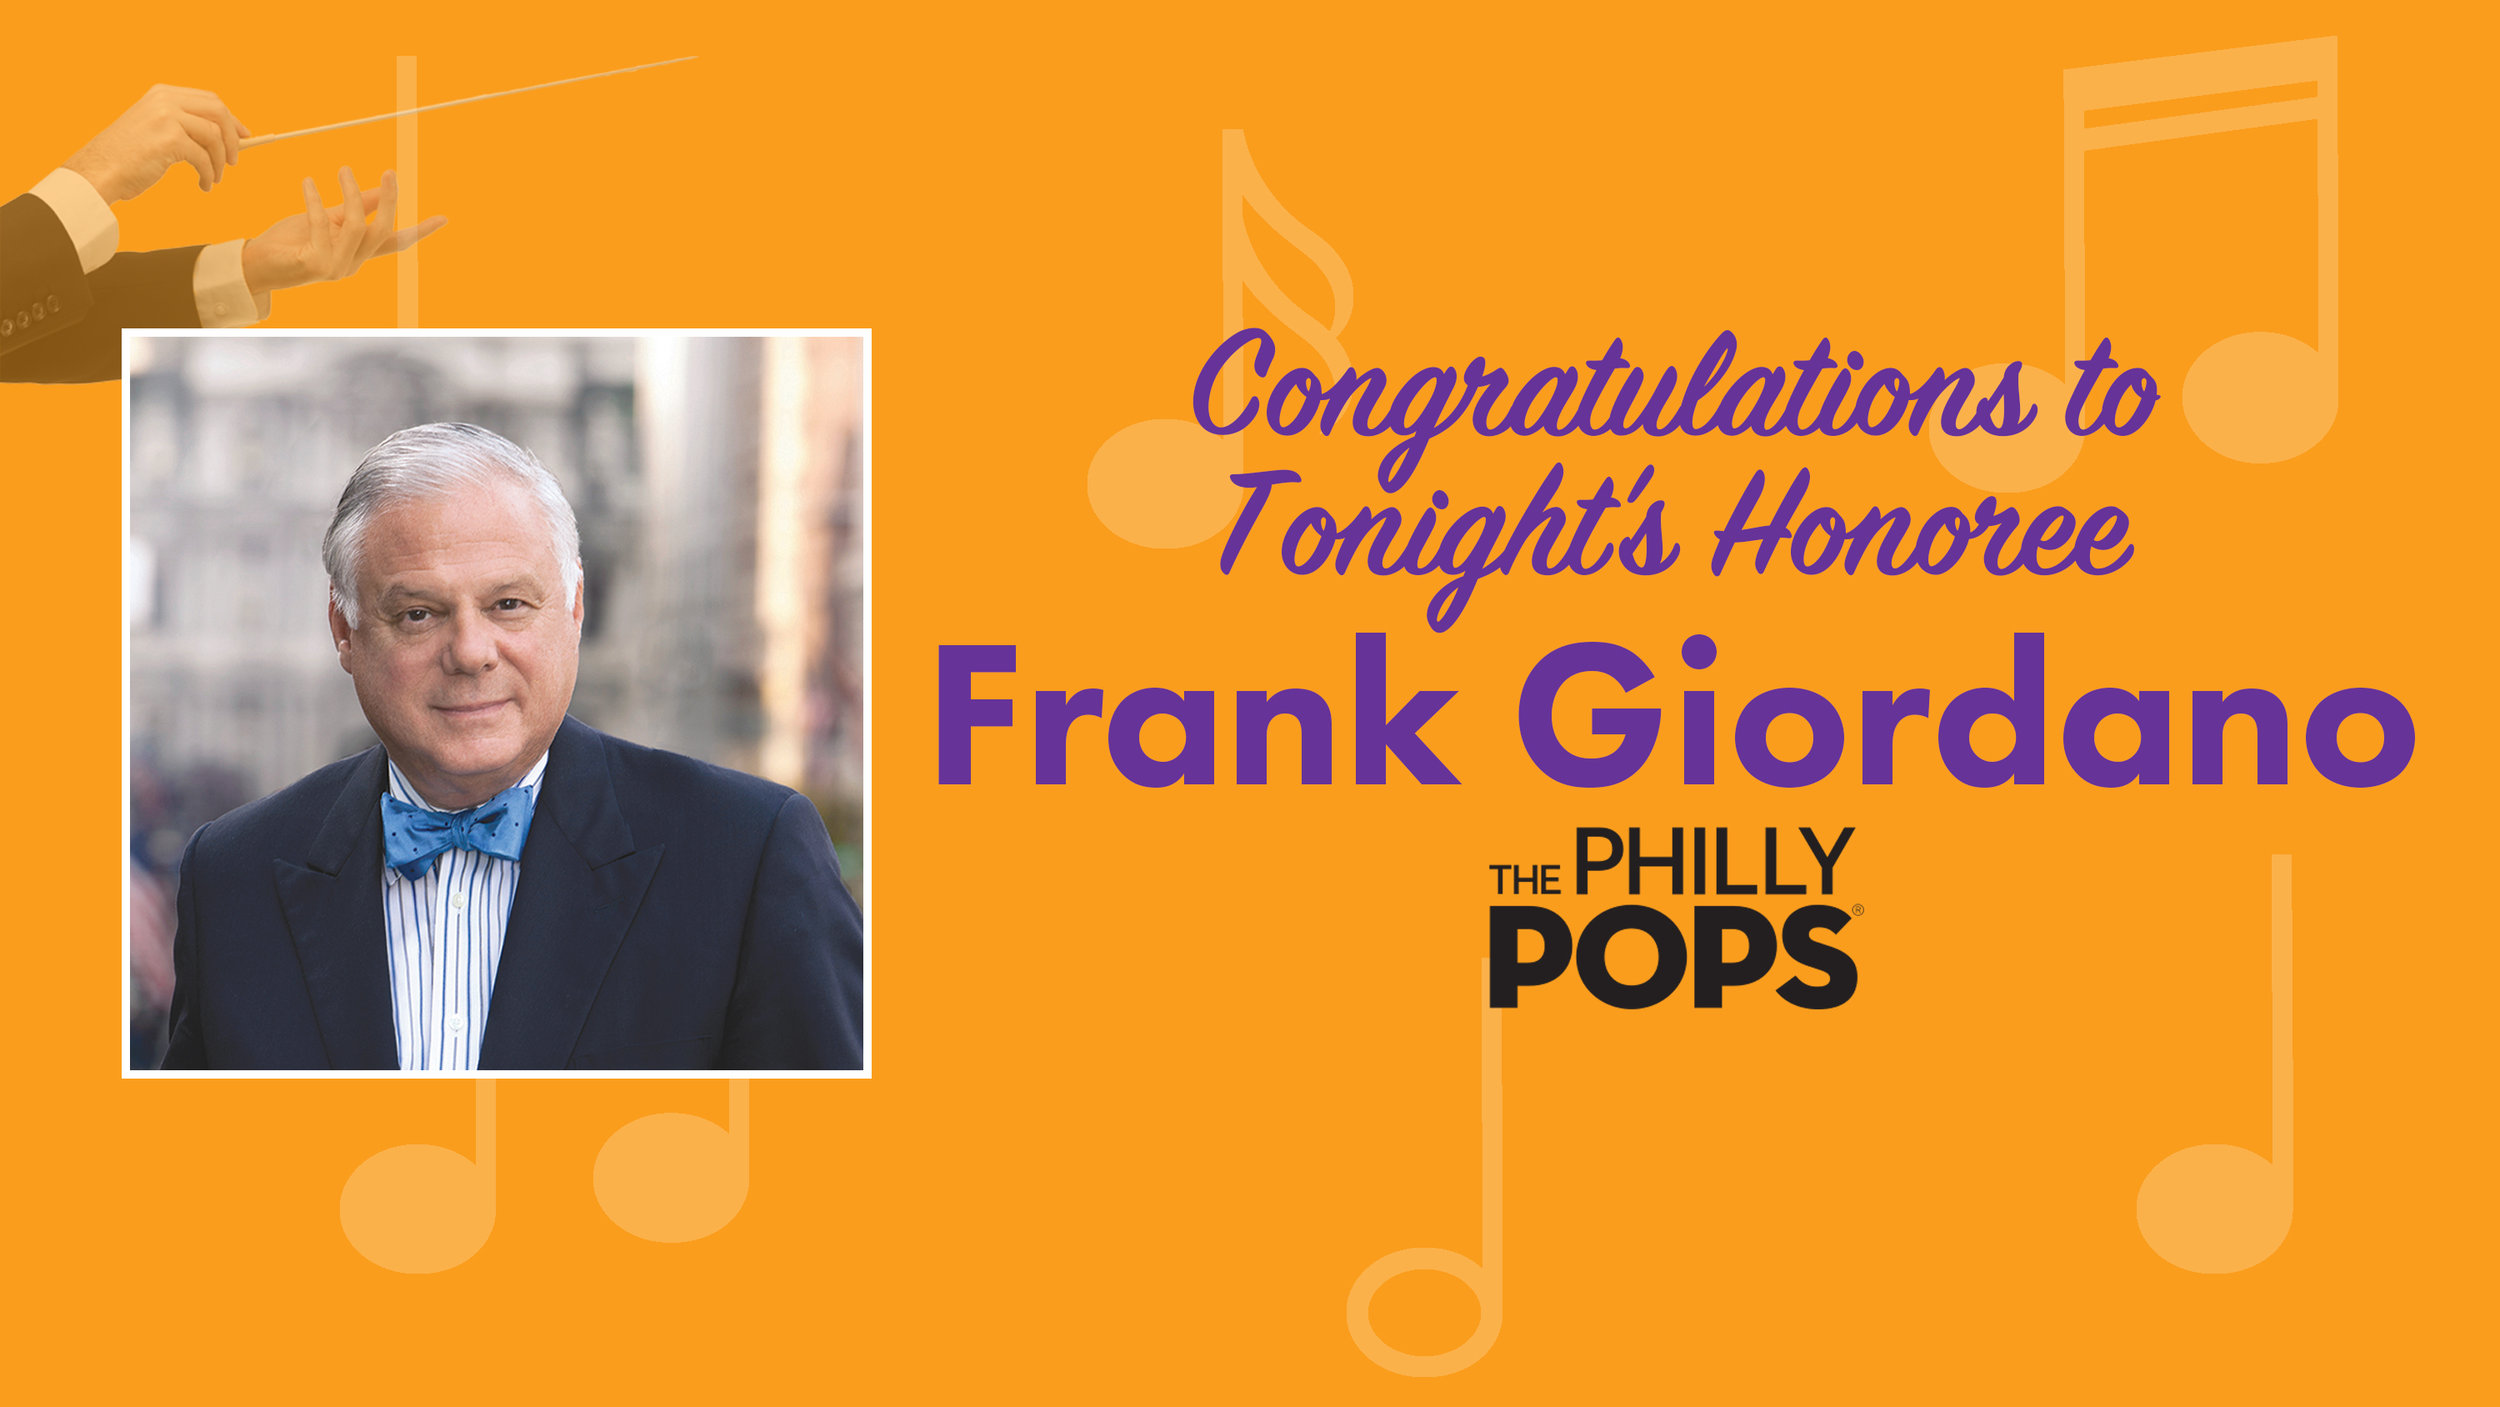 Congratulations Slide for 26GPALA Event Presentation  (Frank Giordano's photo provided by The Philly Pops. The Philly Pops Logo is under copyright by The Philly Pops & Encore Series, Inc.)